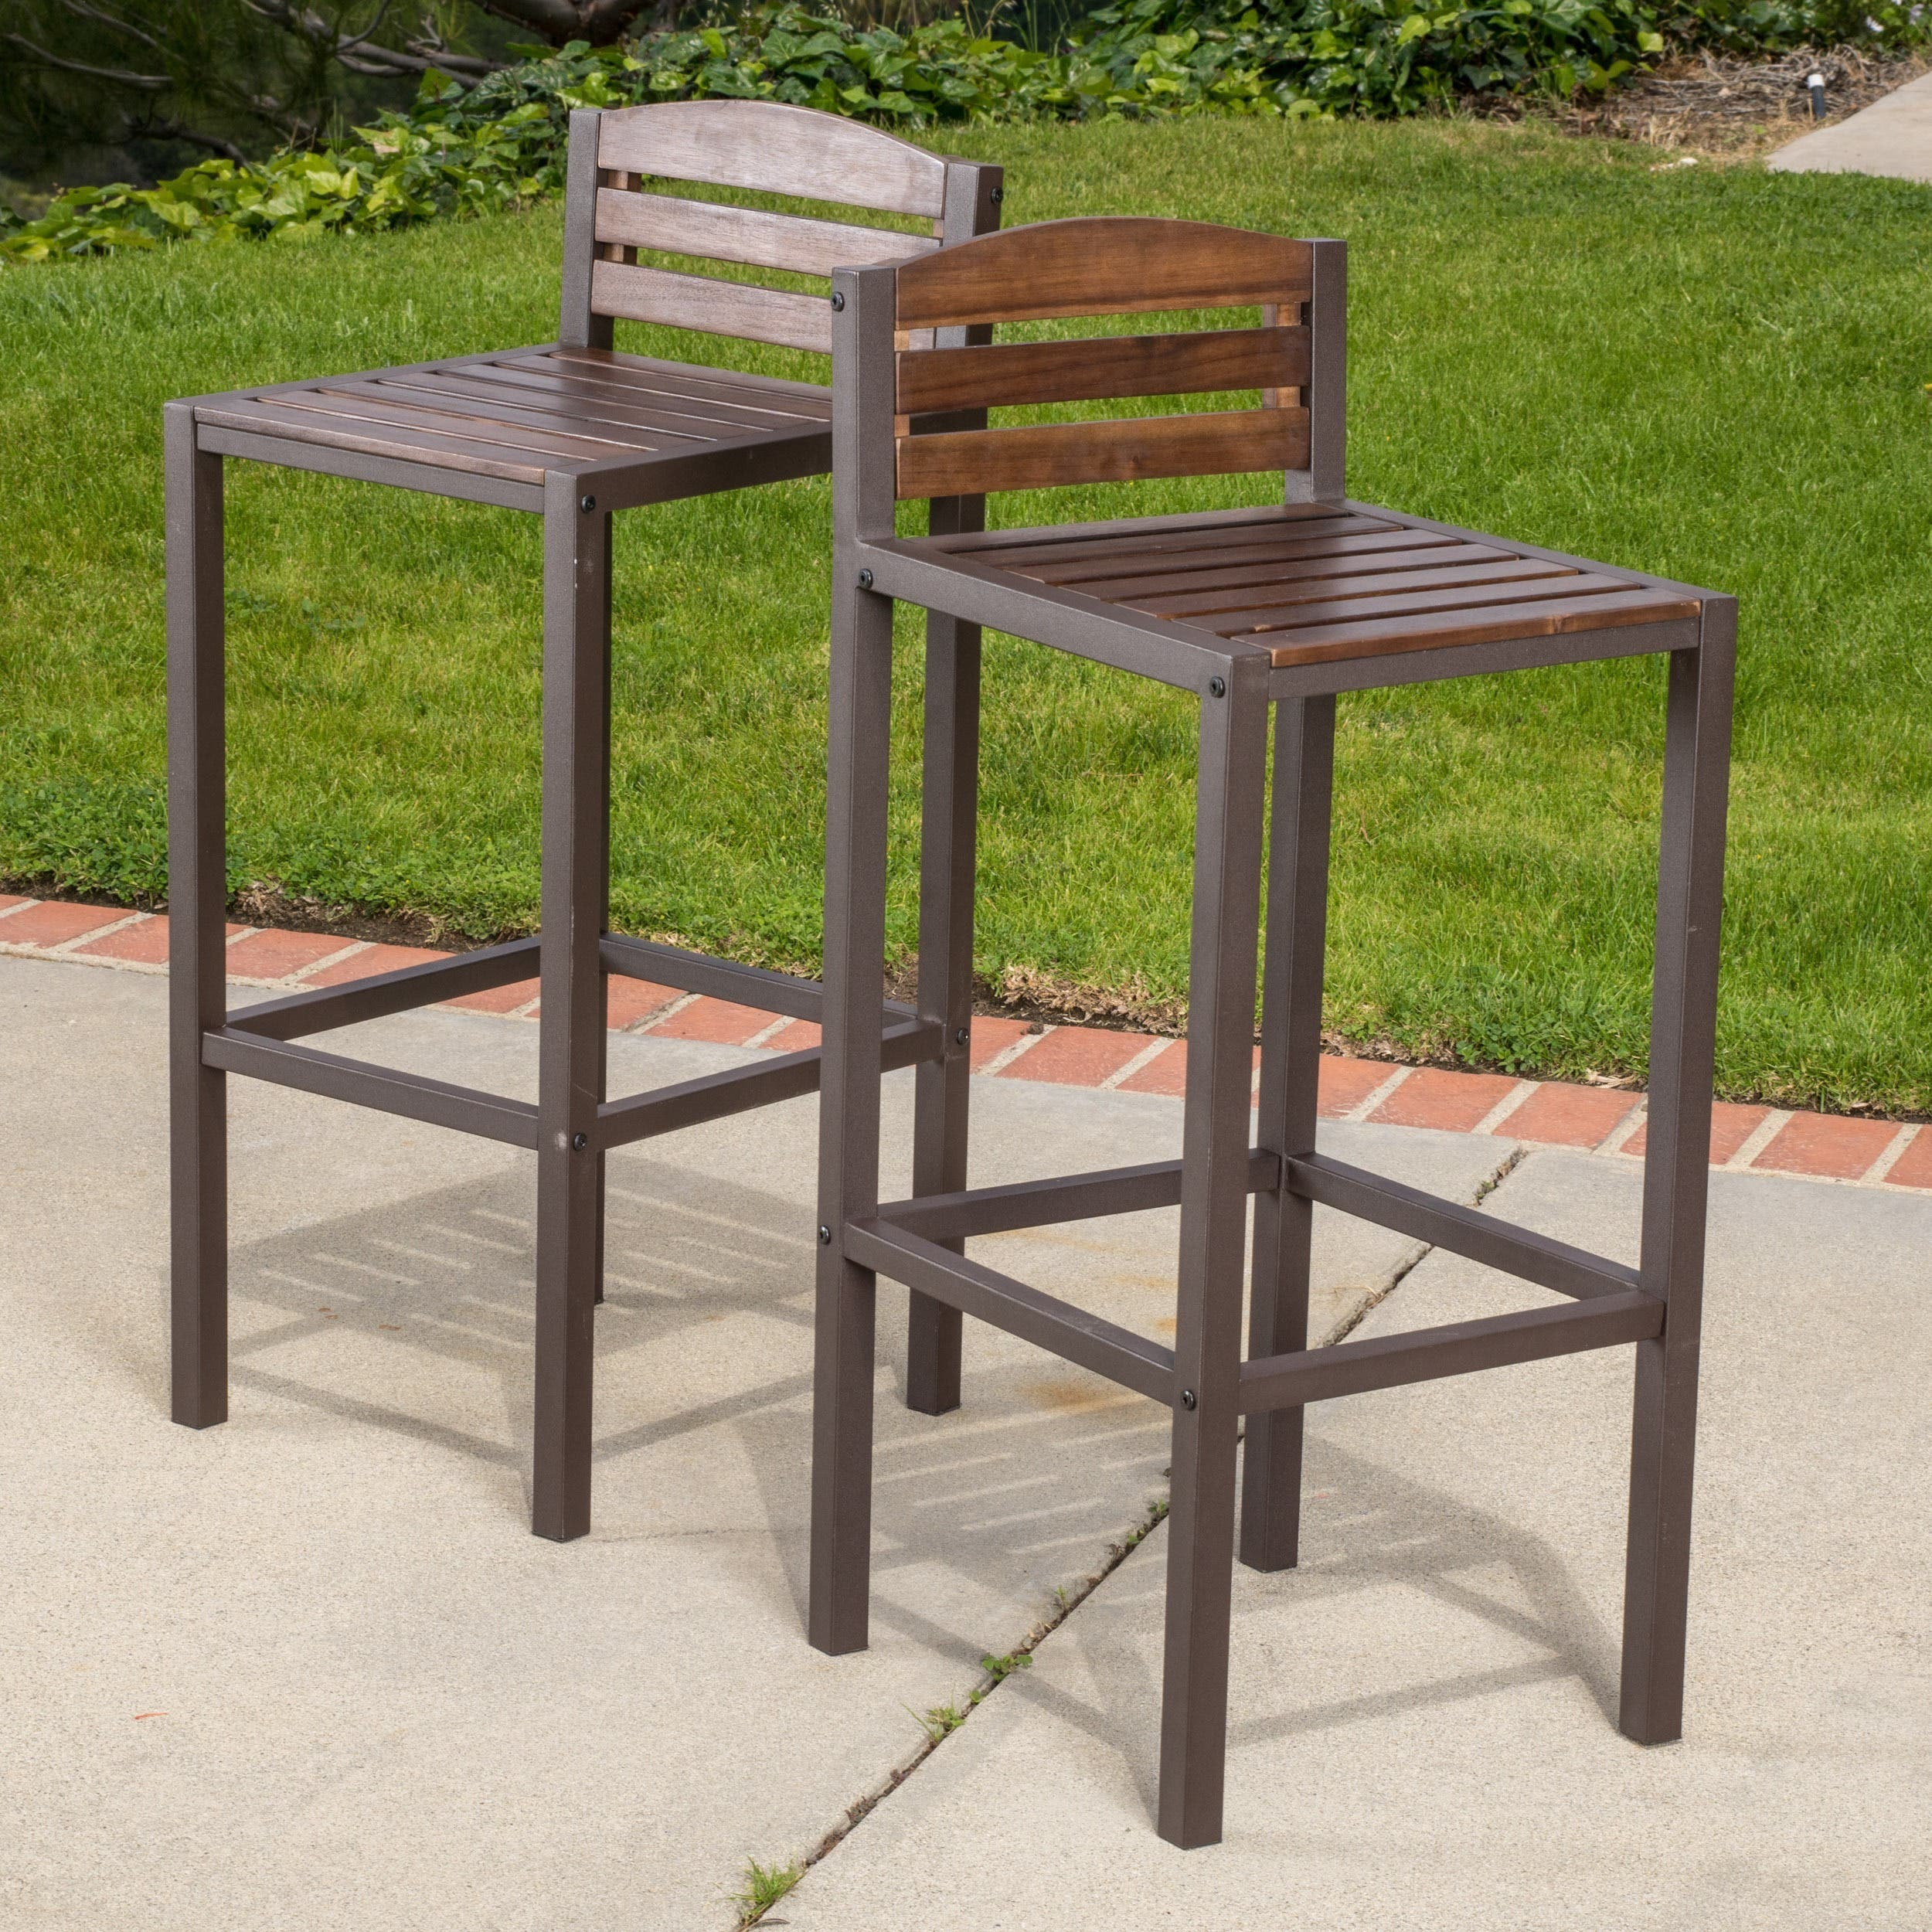 Milos Outdoor Acacia Wood Barstool (Set of 2) by Christopher Knight Home|https://ak1.ostkcdn.com/images/products/P18377989.jpg?impolicy=medium